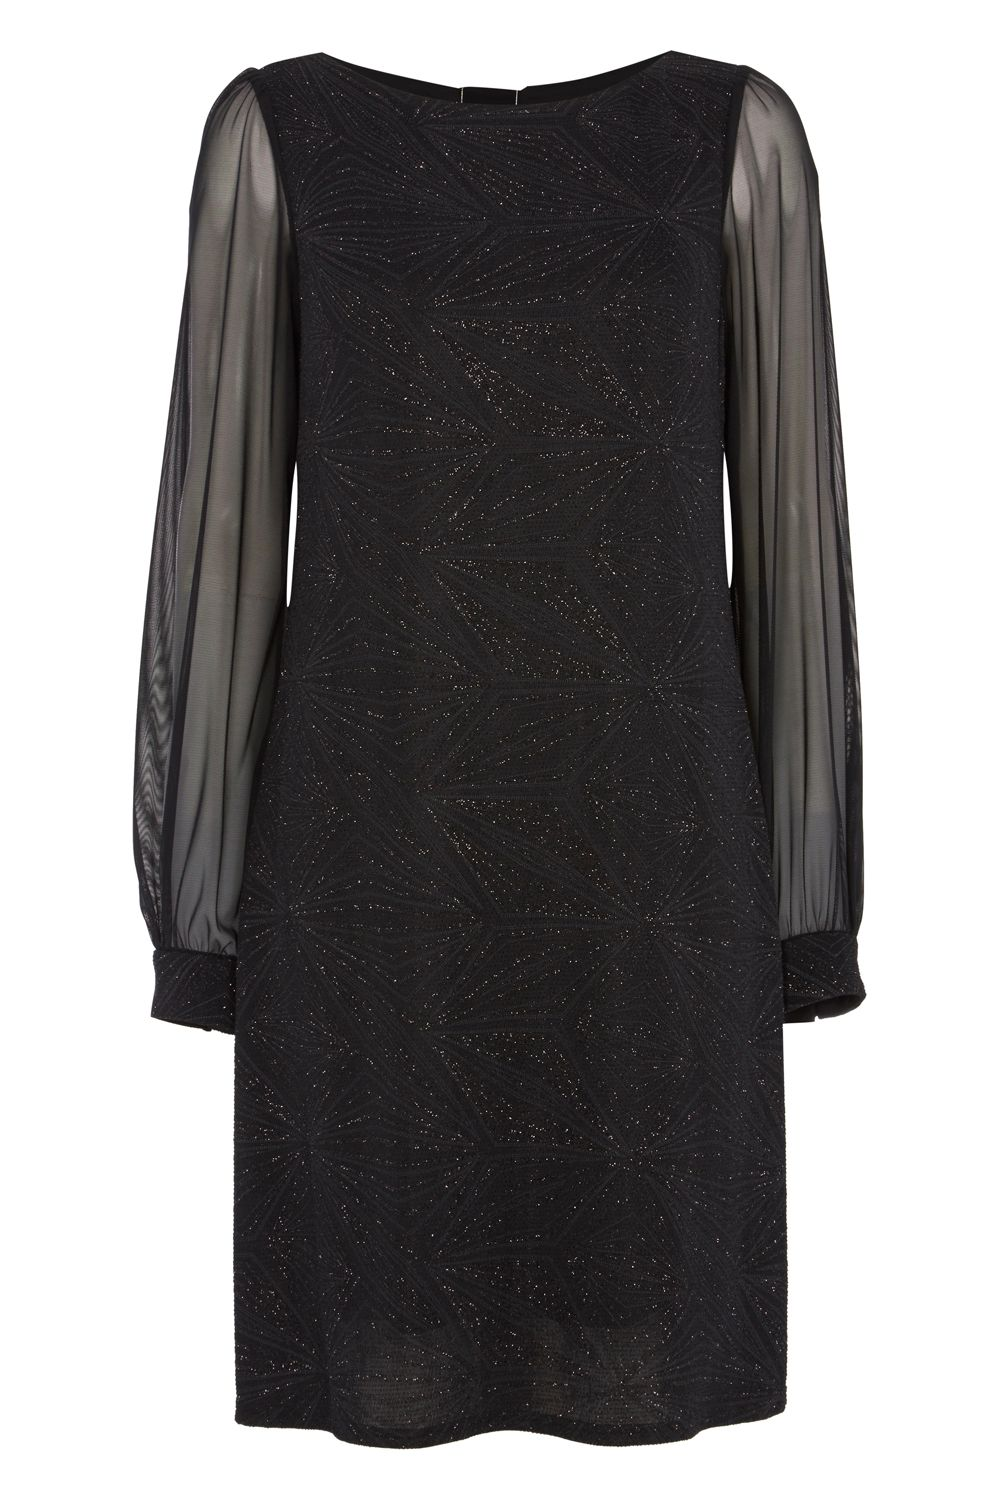 Roman Originals Glitter Sparkle Chiffon Sleeve Dress, Black